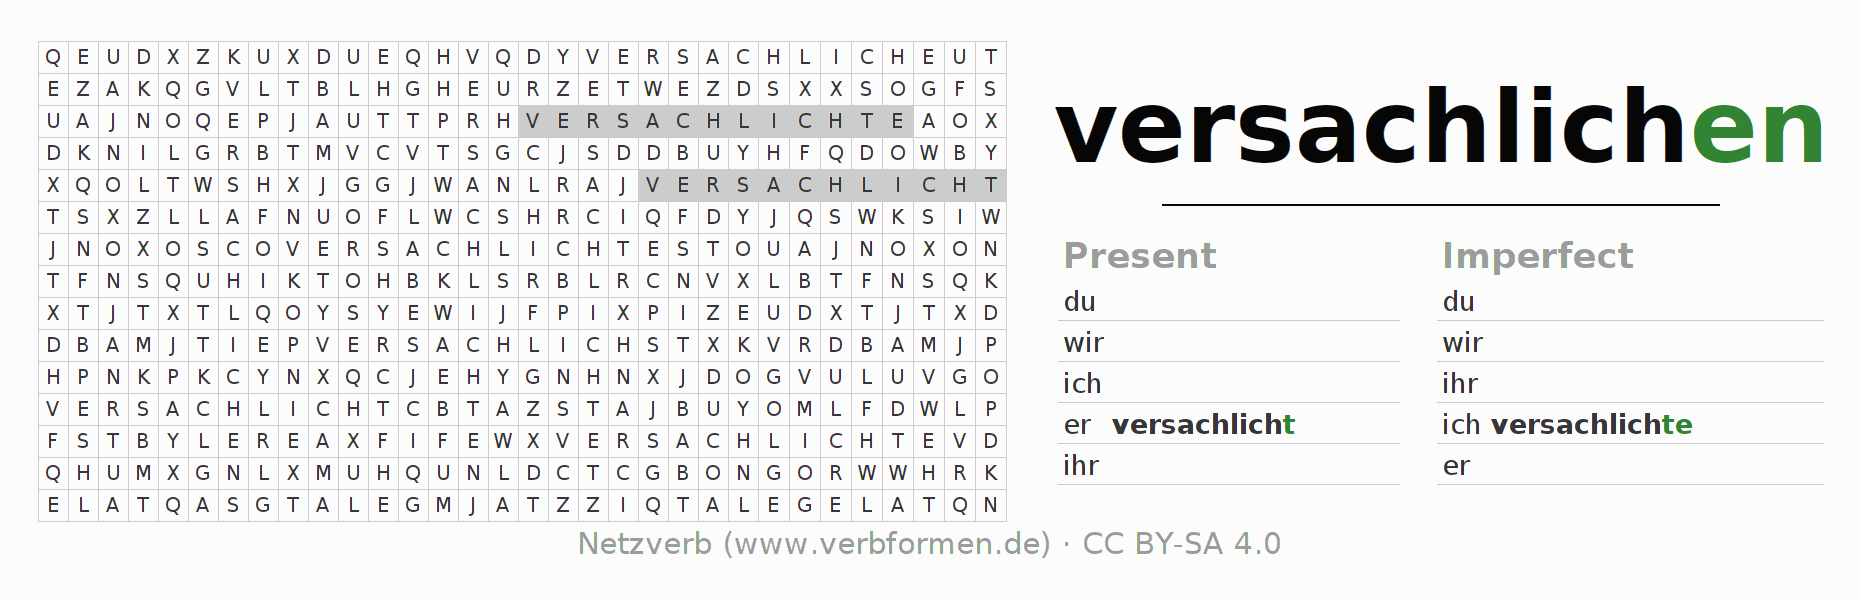 Word search puzzle for the conjugation of the verb versachlichen